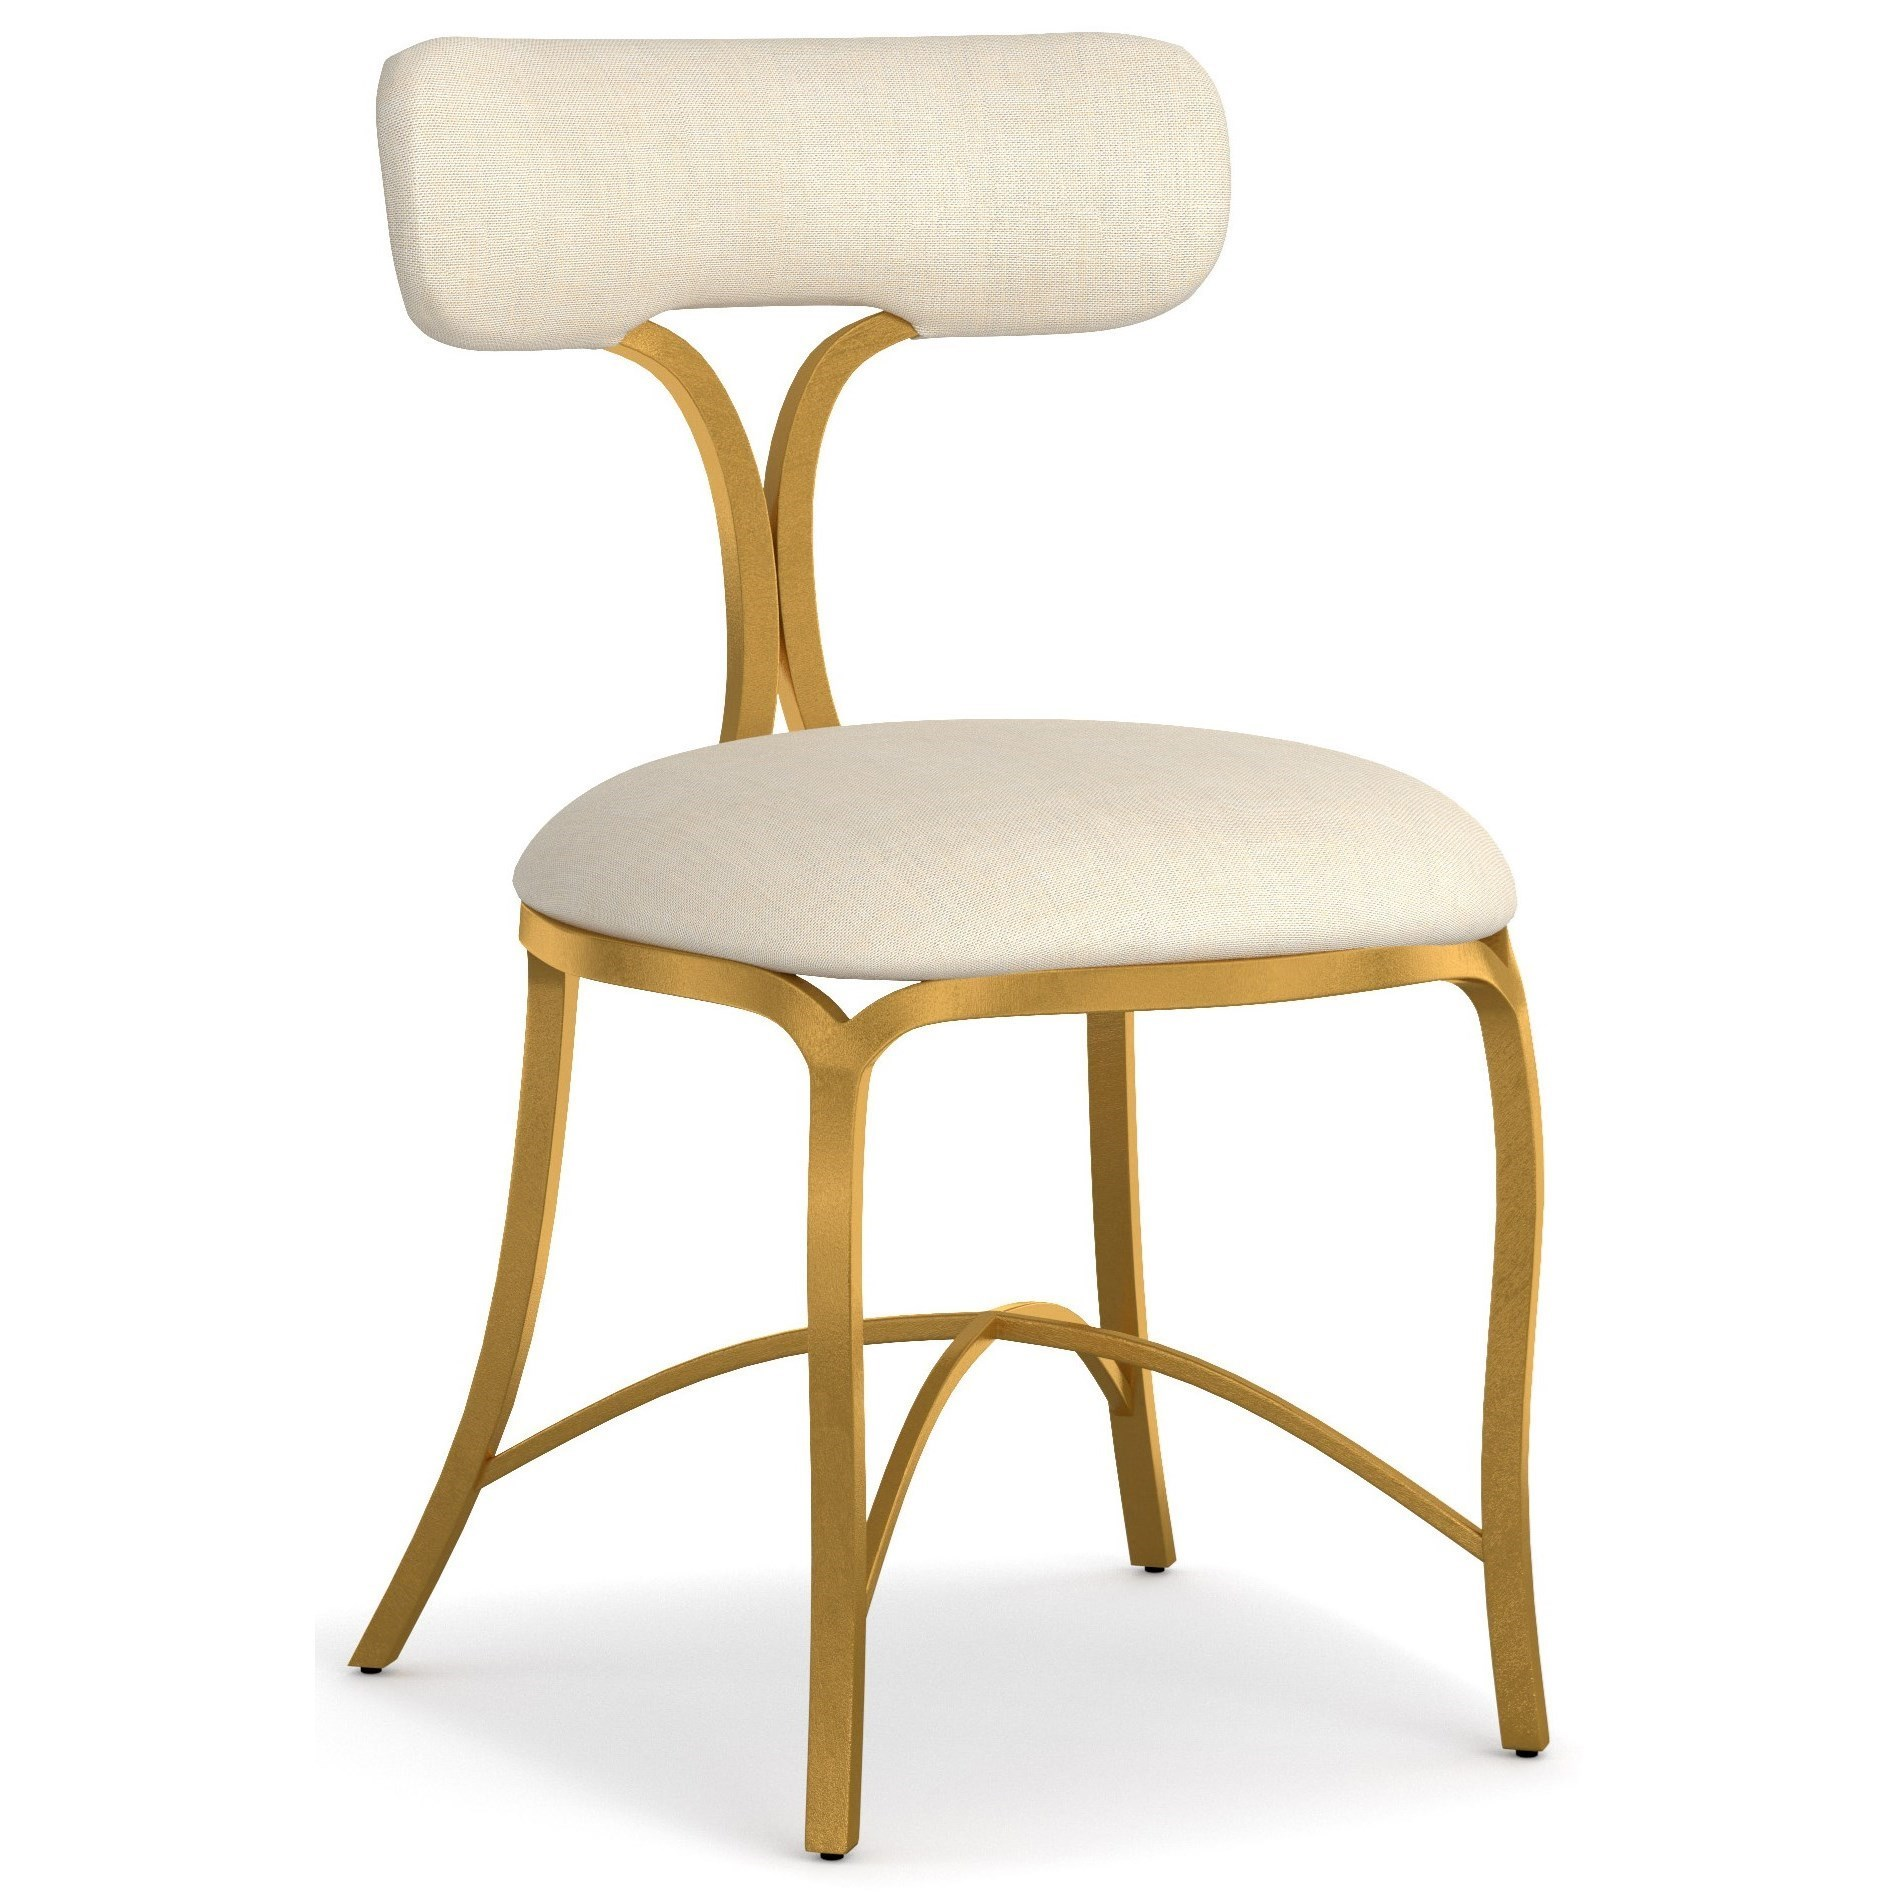 Cynthia Rowley For Hooker Furniture Cynthia Rowley   CuriousSwanson  Upholstered Metal Side Chair ...